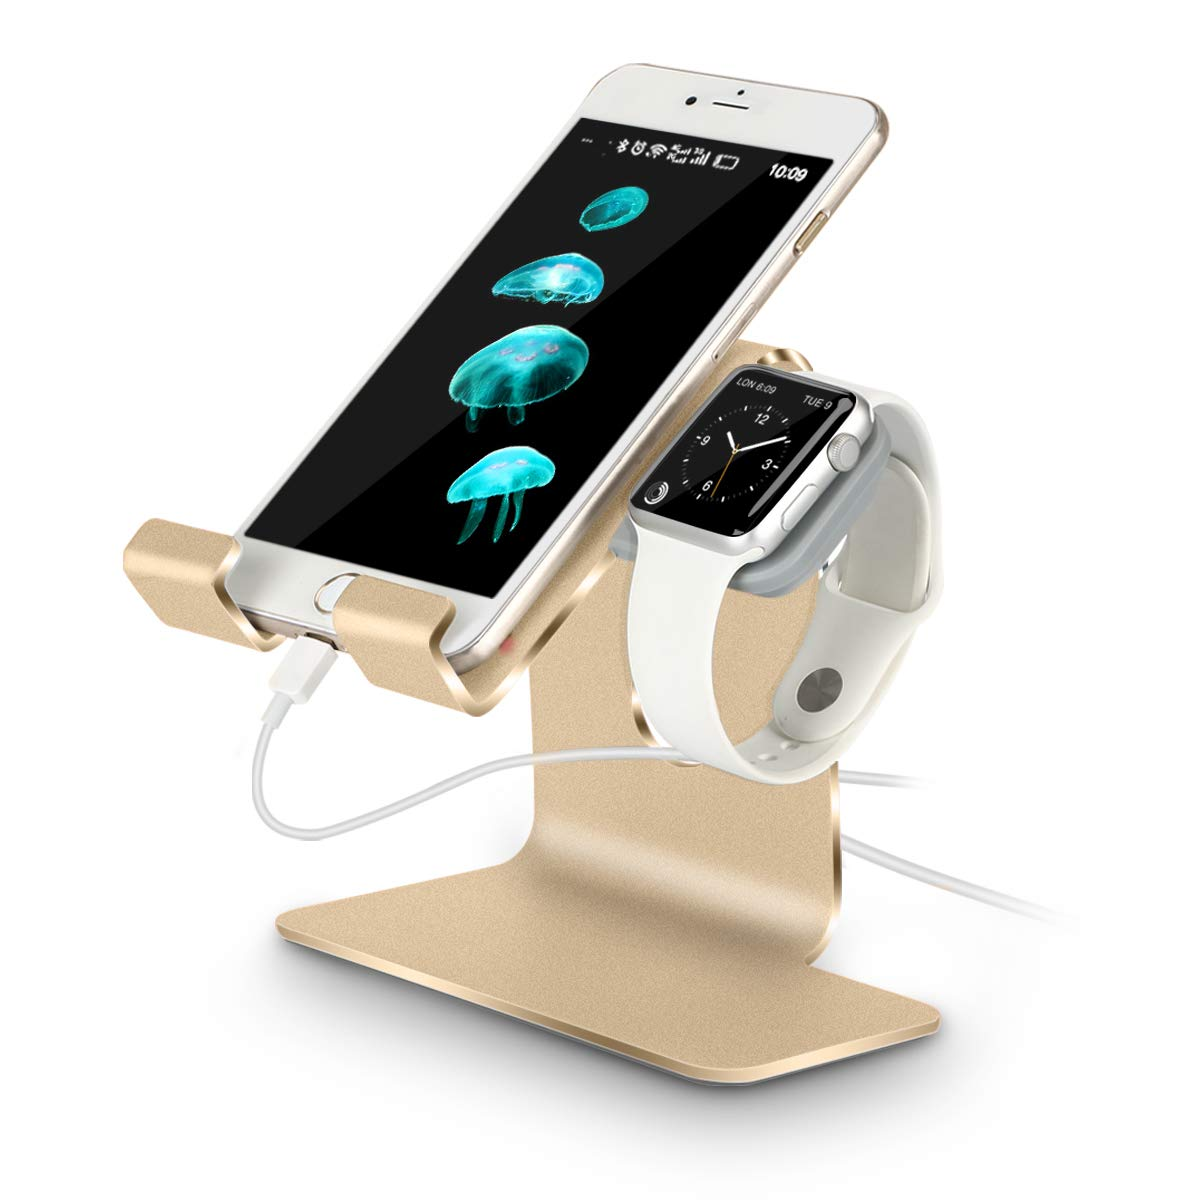 Tranesca 2 in 1 Apple Watch Stand and Universal Desktop Cell Phone Stand, Advanced 4mm Thickness Aluminum Stand Holder for iPhone and Apple Watch (Both 38mm & 42mm), Gold